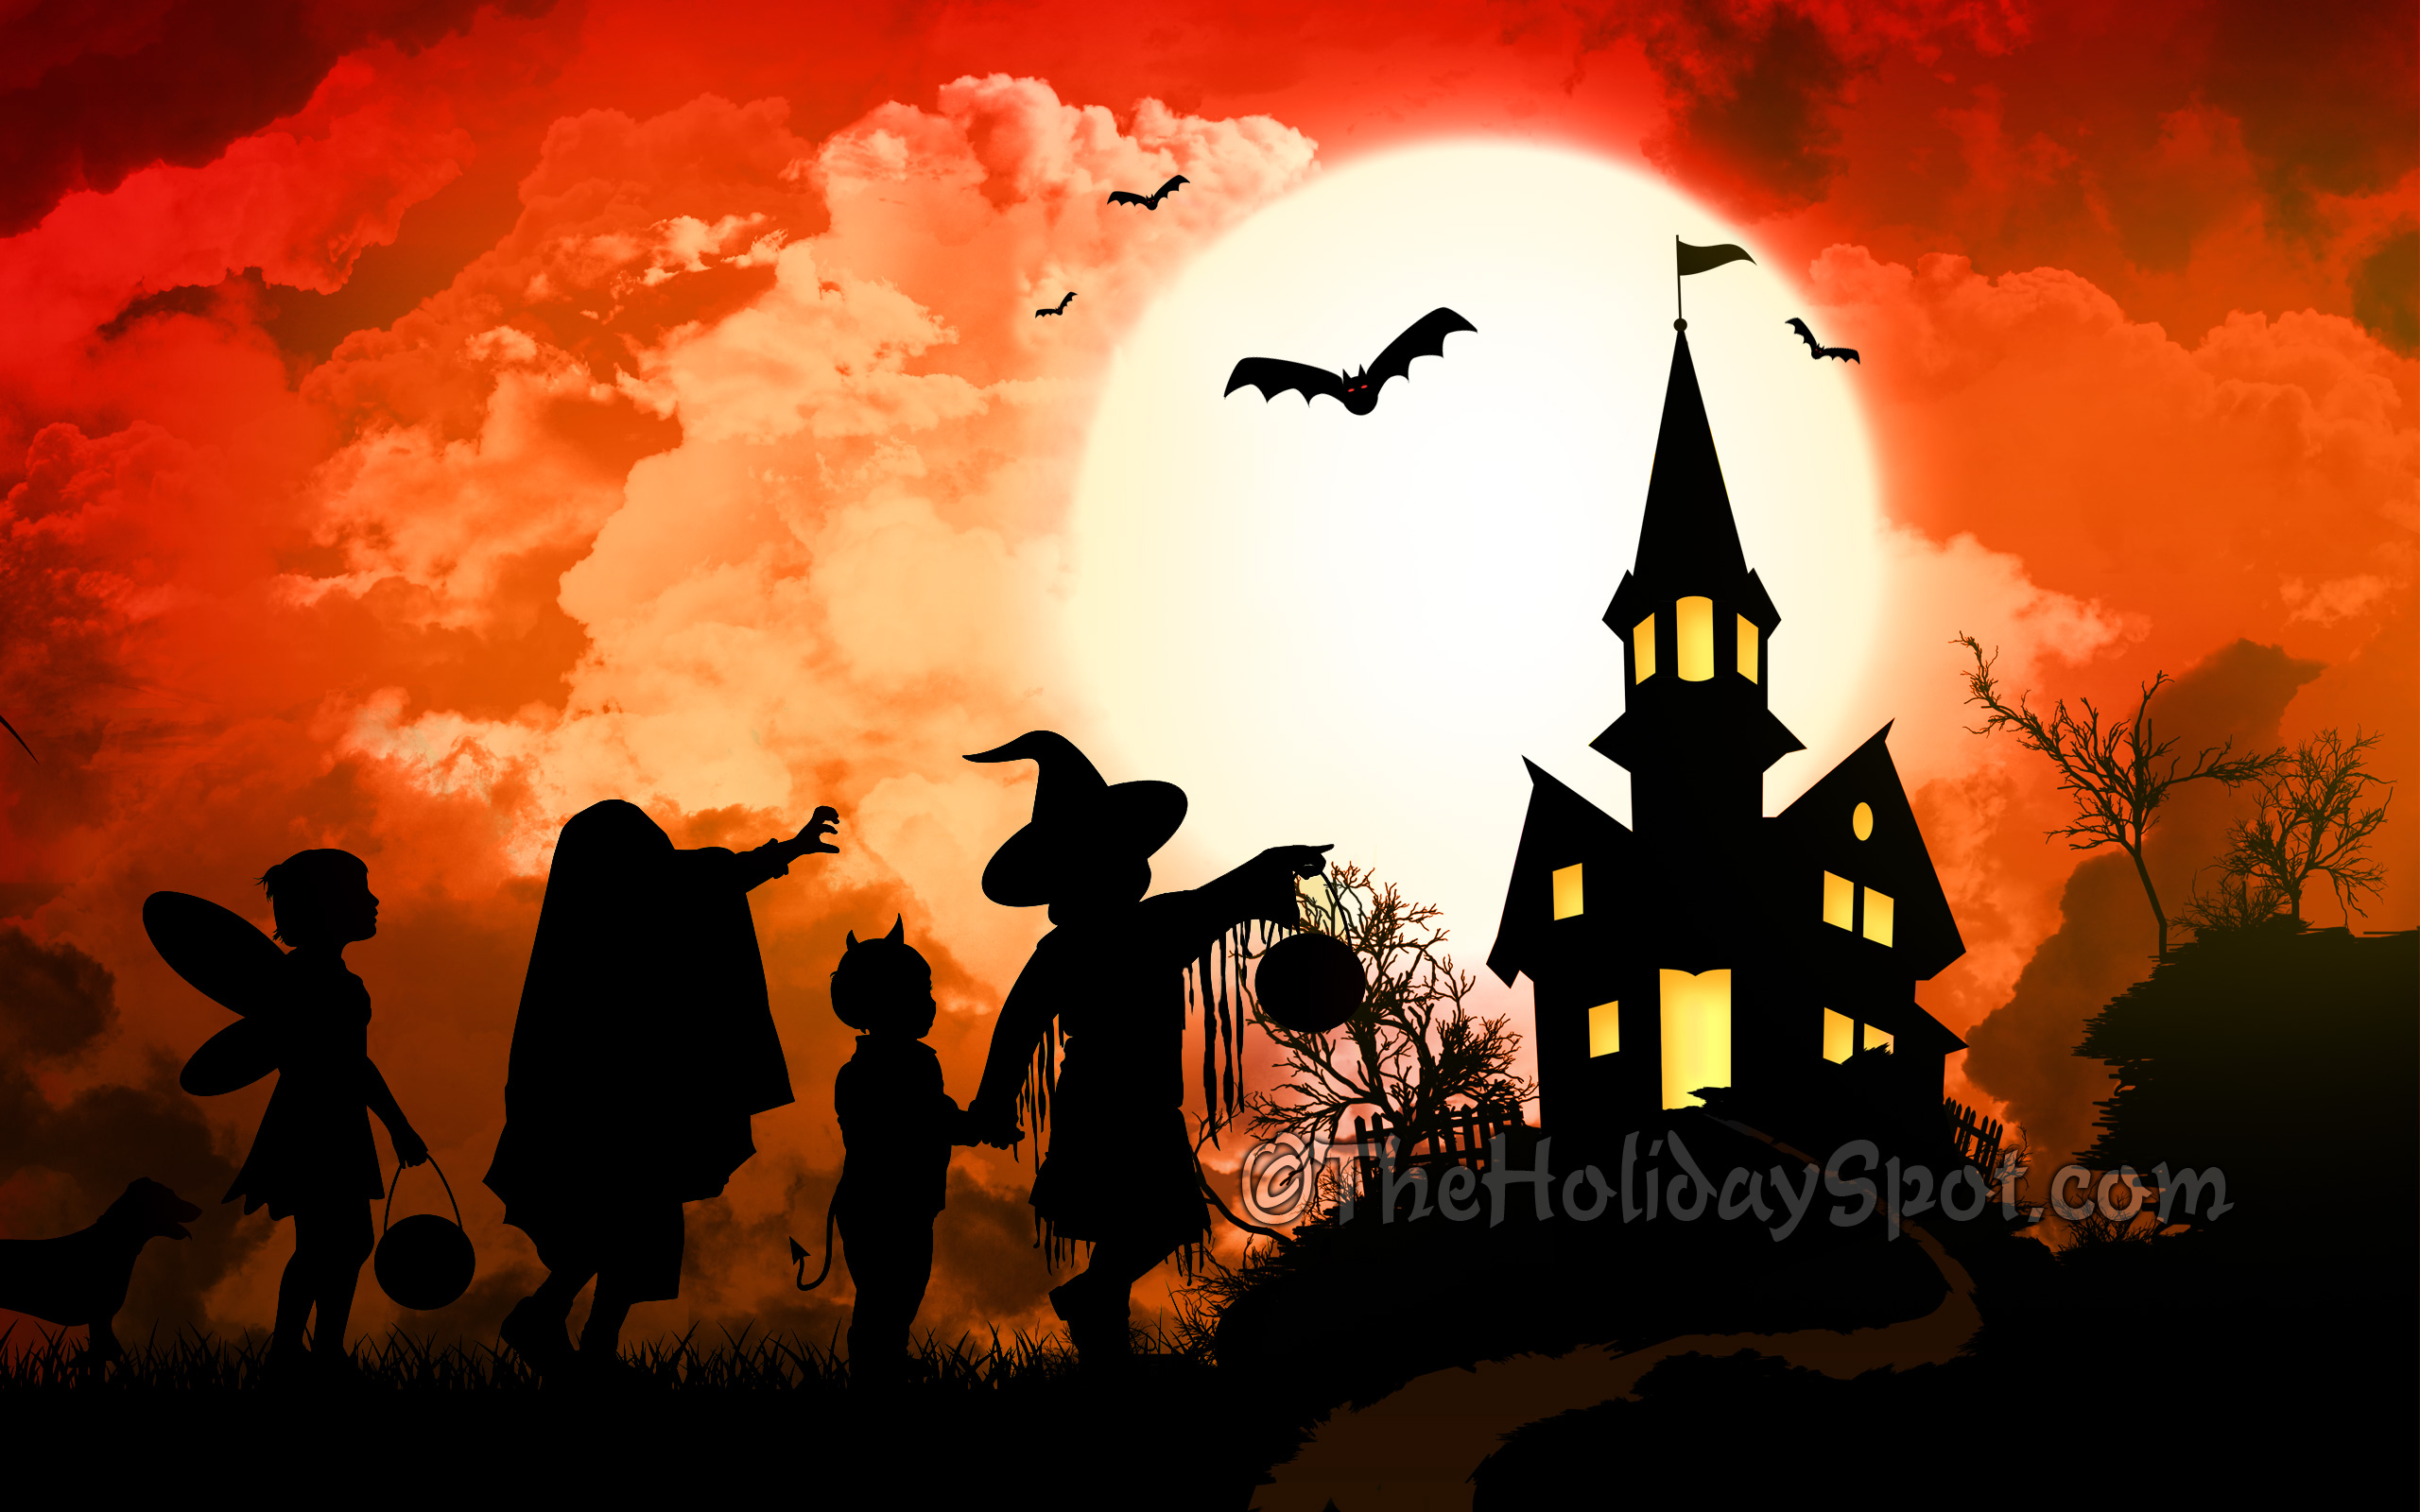 Give a scary treat to everyone by forwarding as well downloading this haunted wallpaper background. This wallpaper will surely serve your purpose of scaring ...